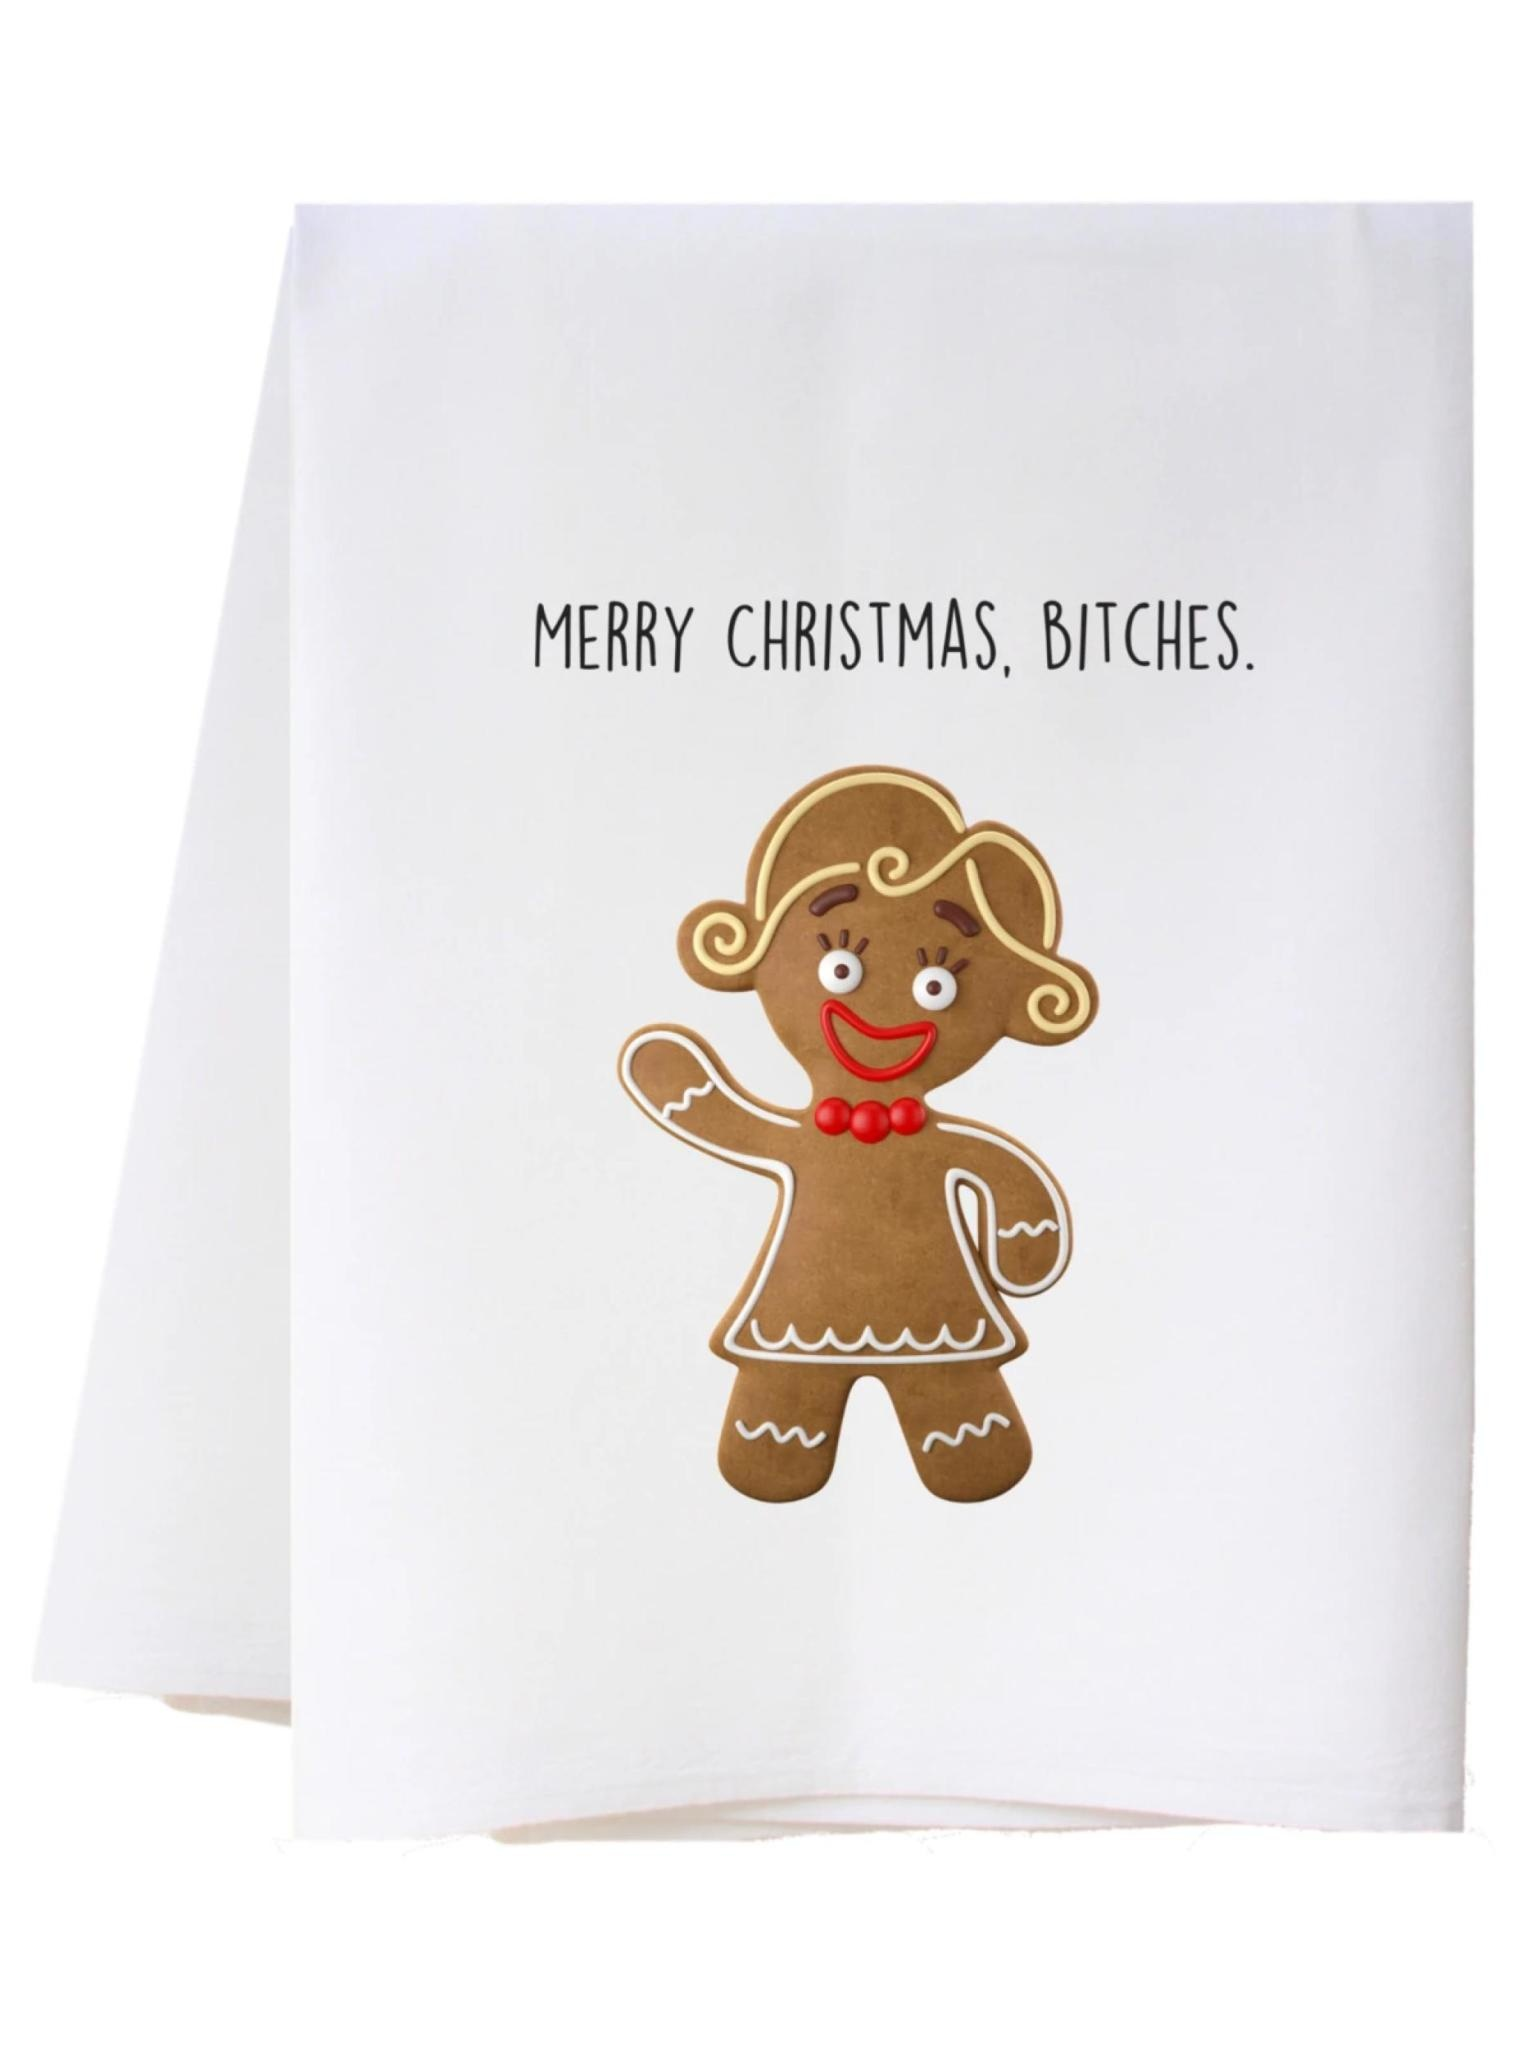 Southern Sisters Merry Christmas B*tches Flour Sack Towel